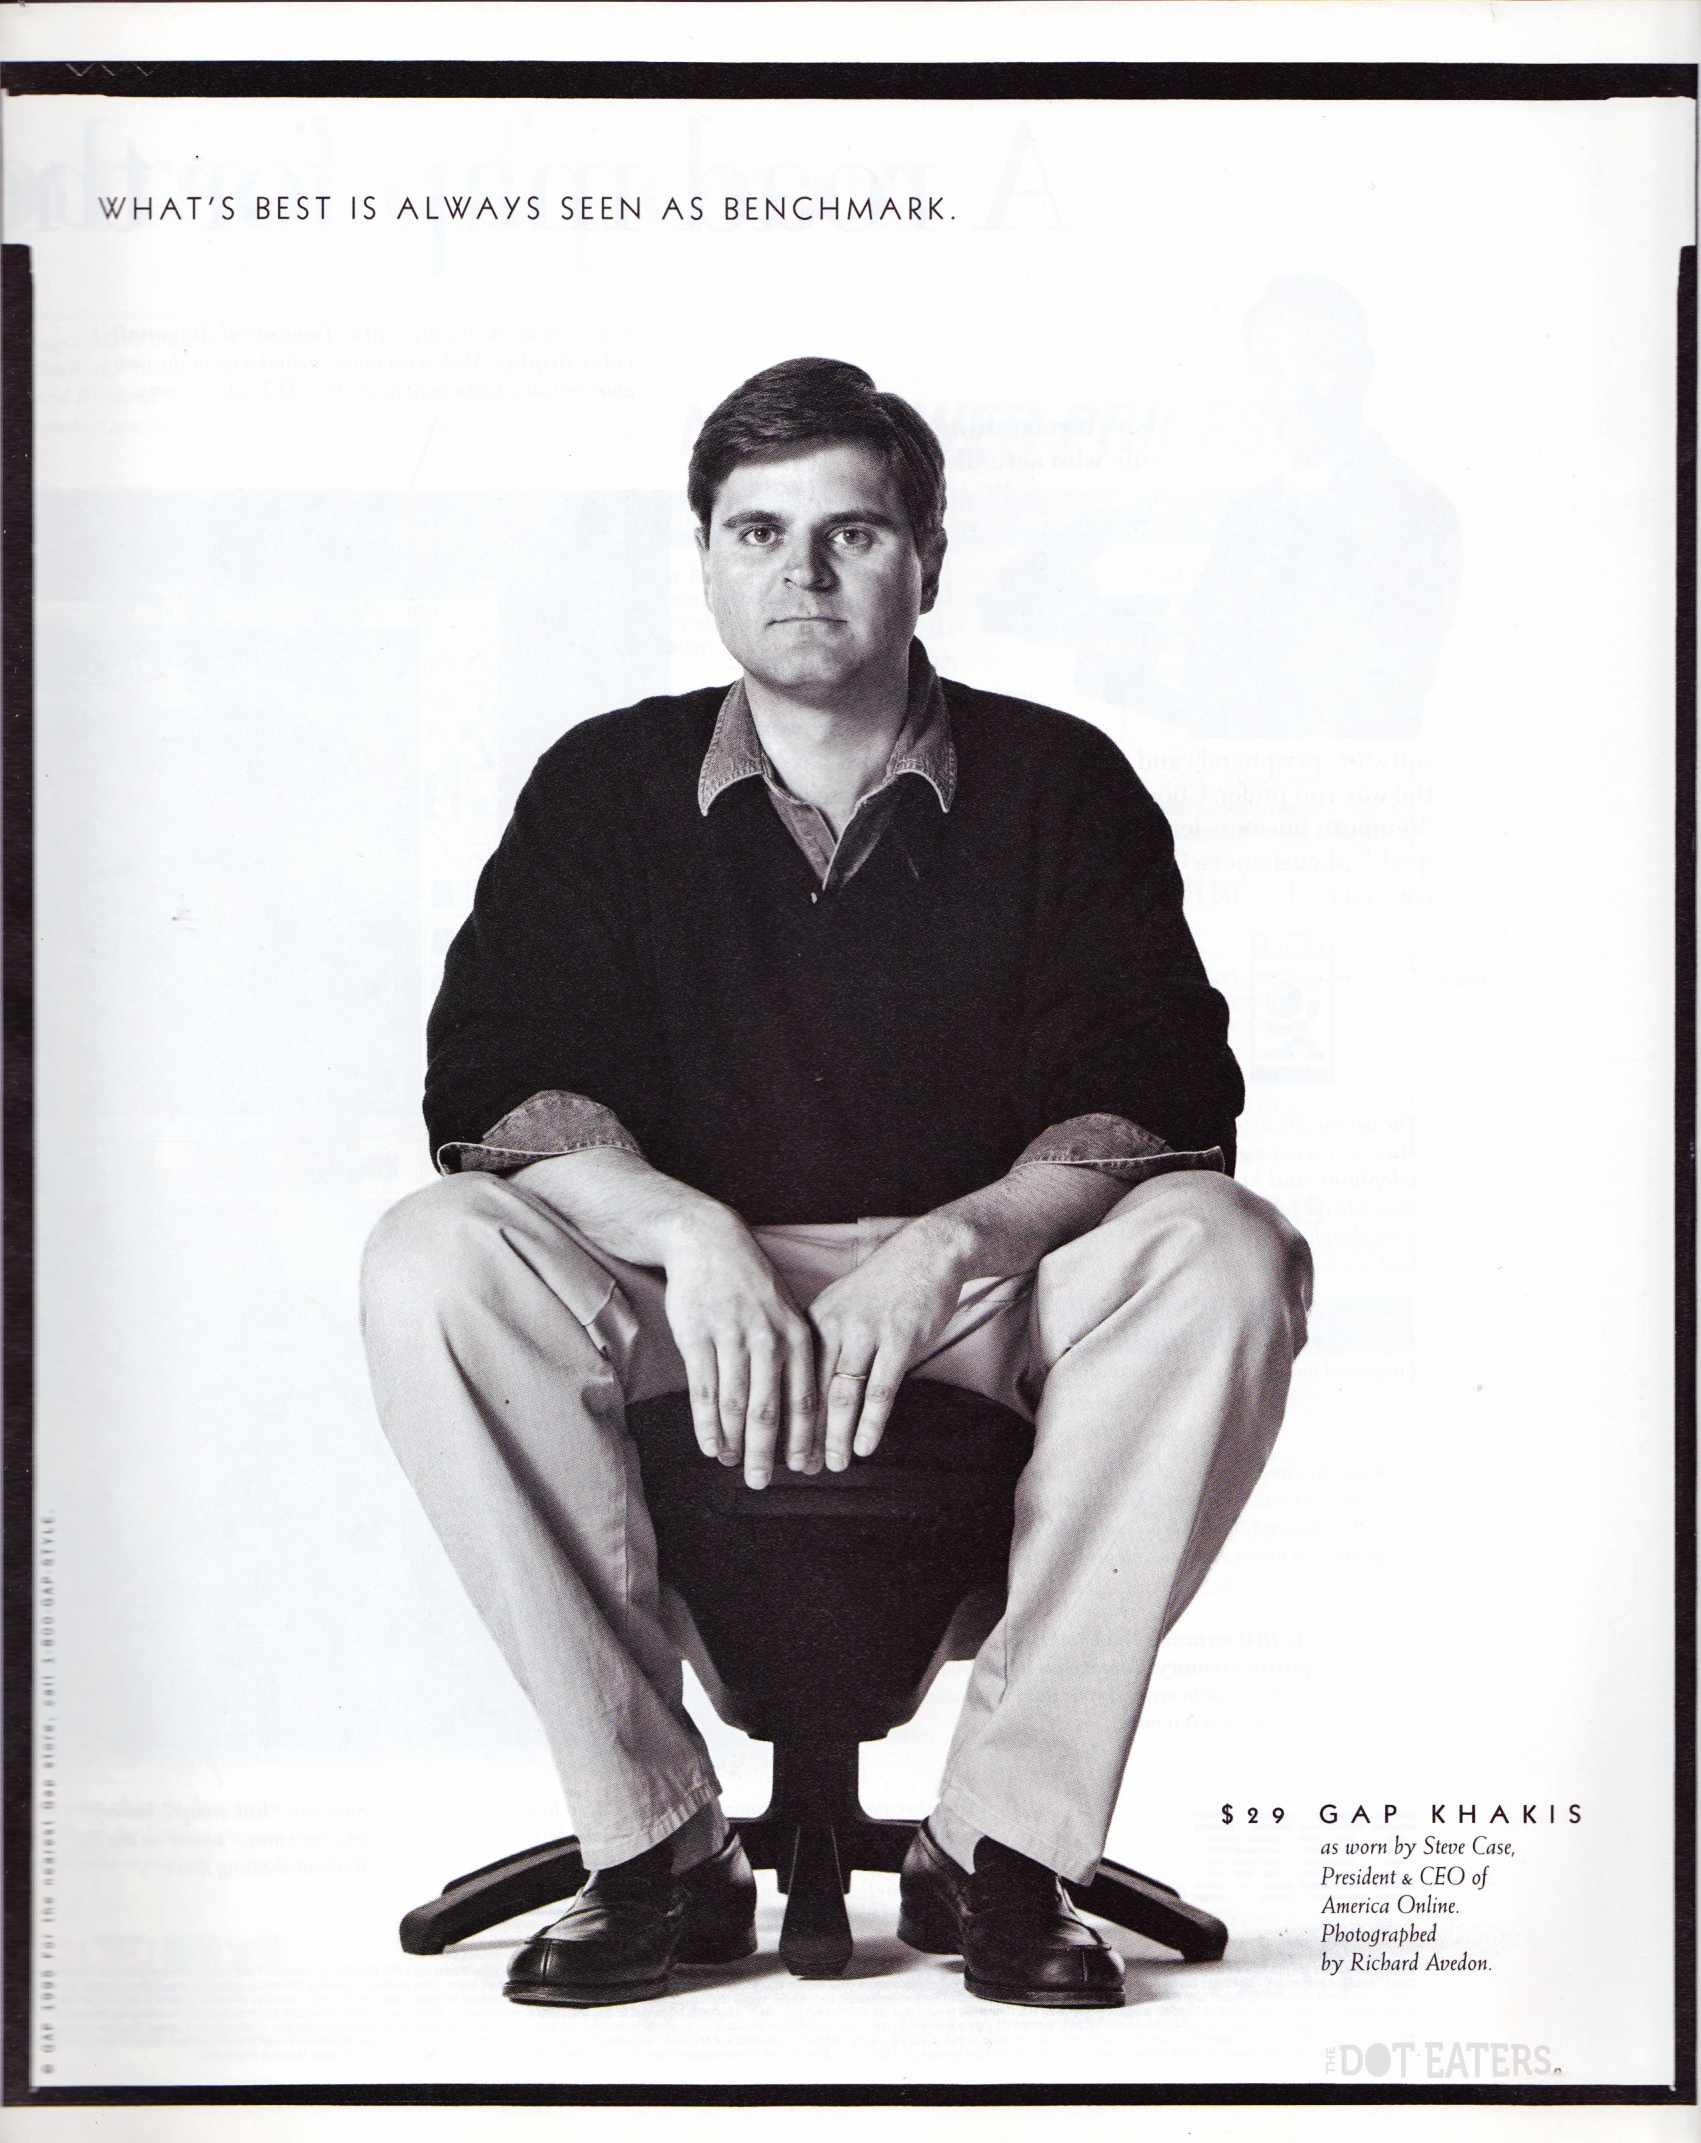 Steve Case, CEO of America Online, in ad for Gap, 1995